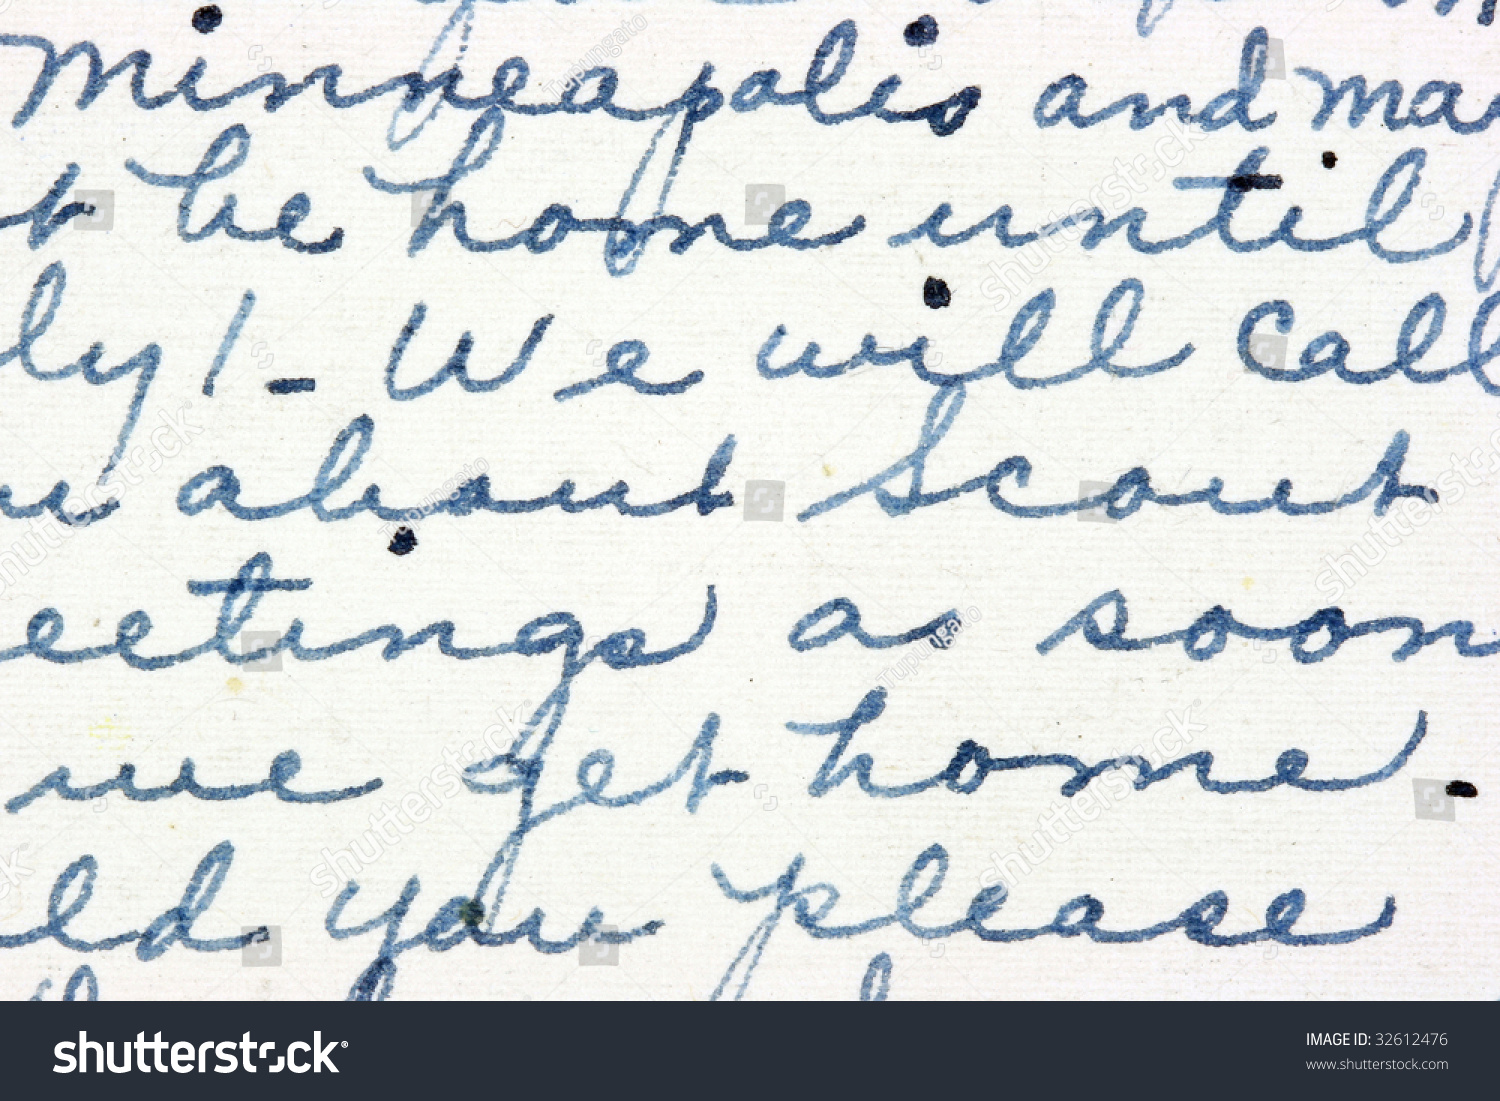 Vintage Hand Writing On A Letter Old Paper With Visible Structure Stock Photo Vintage Hand Writing On A Letter Old Paper With Visible Structure Pen Ink  Stock Photo Vintage Hand Writing On A Letter Old Paper With Visible Structure Pen Ink